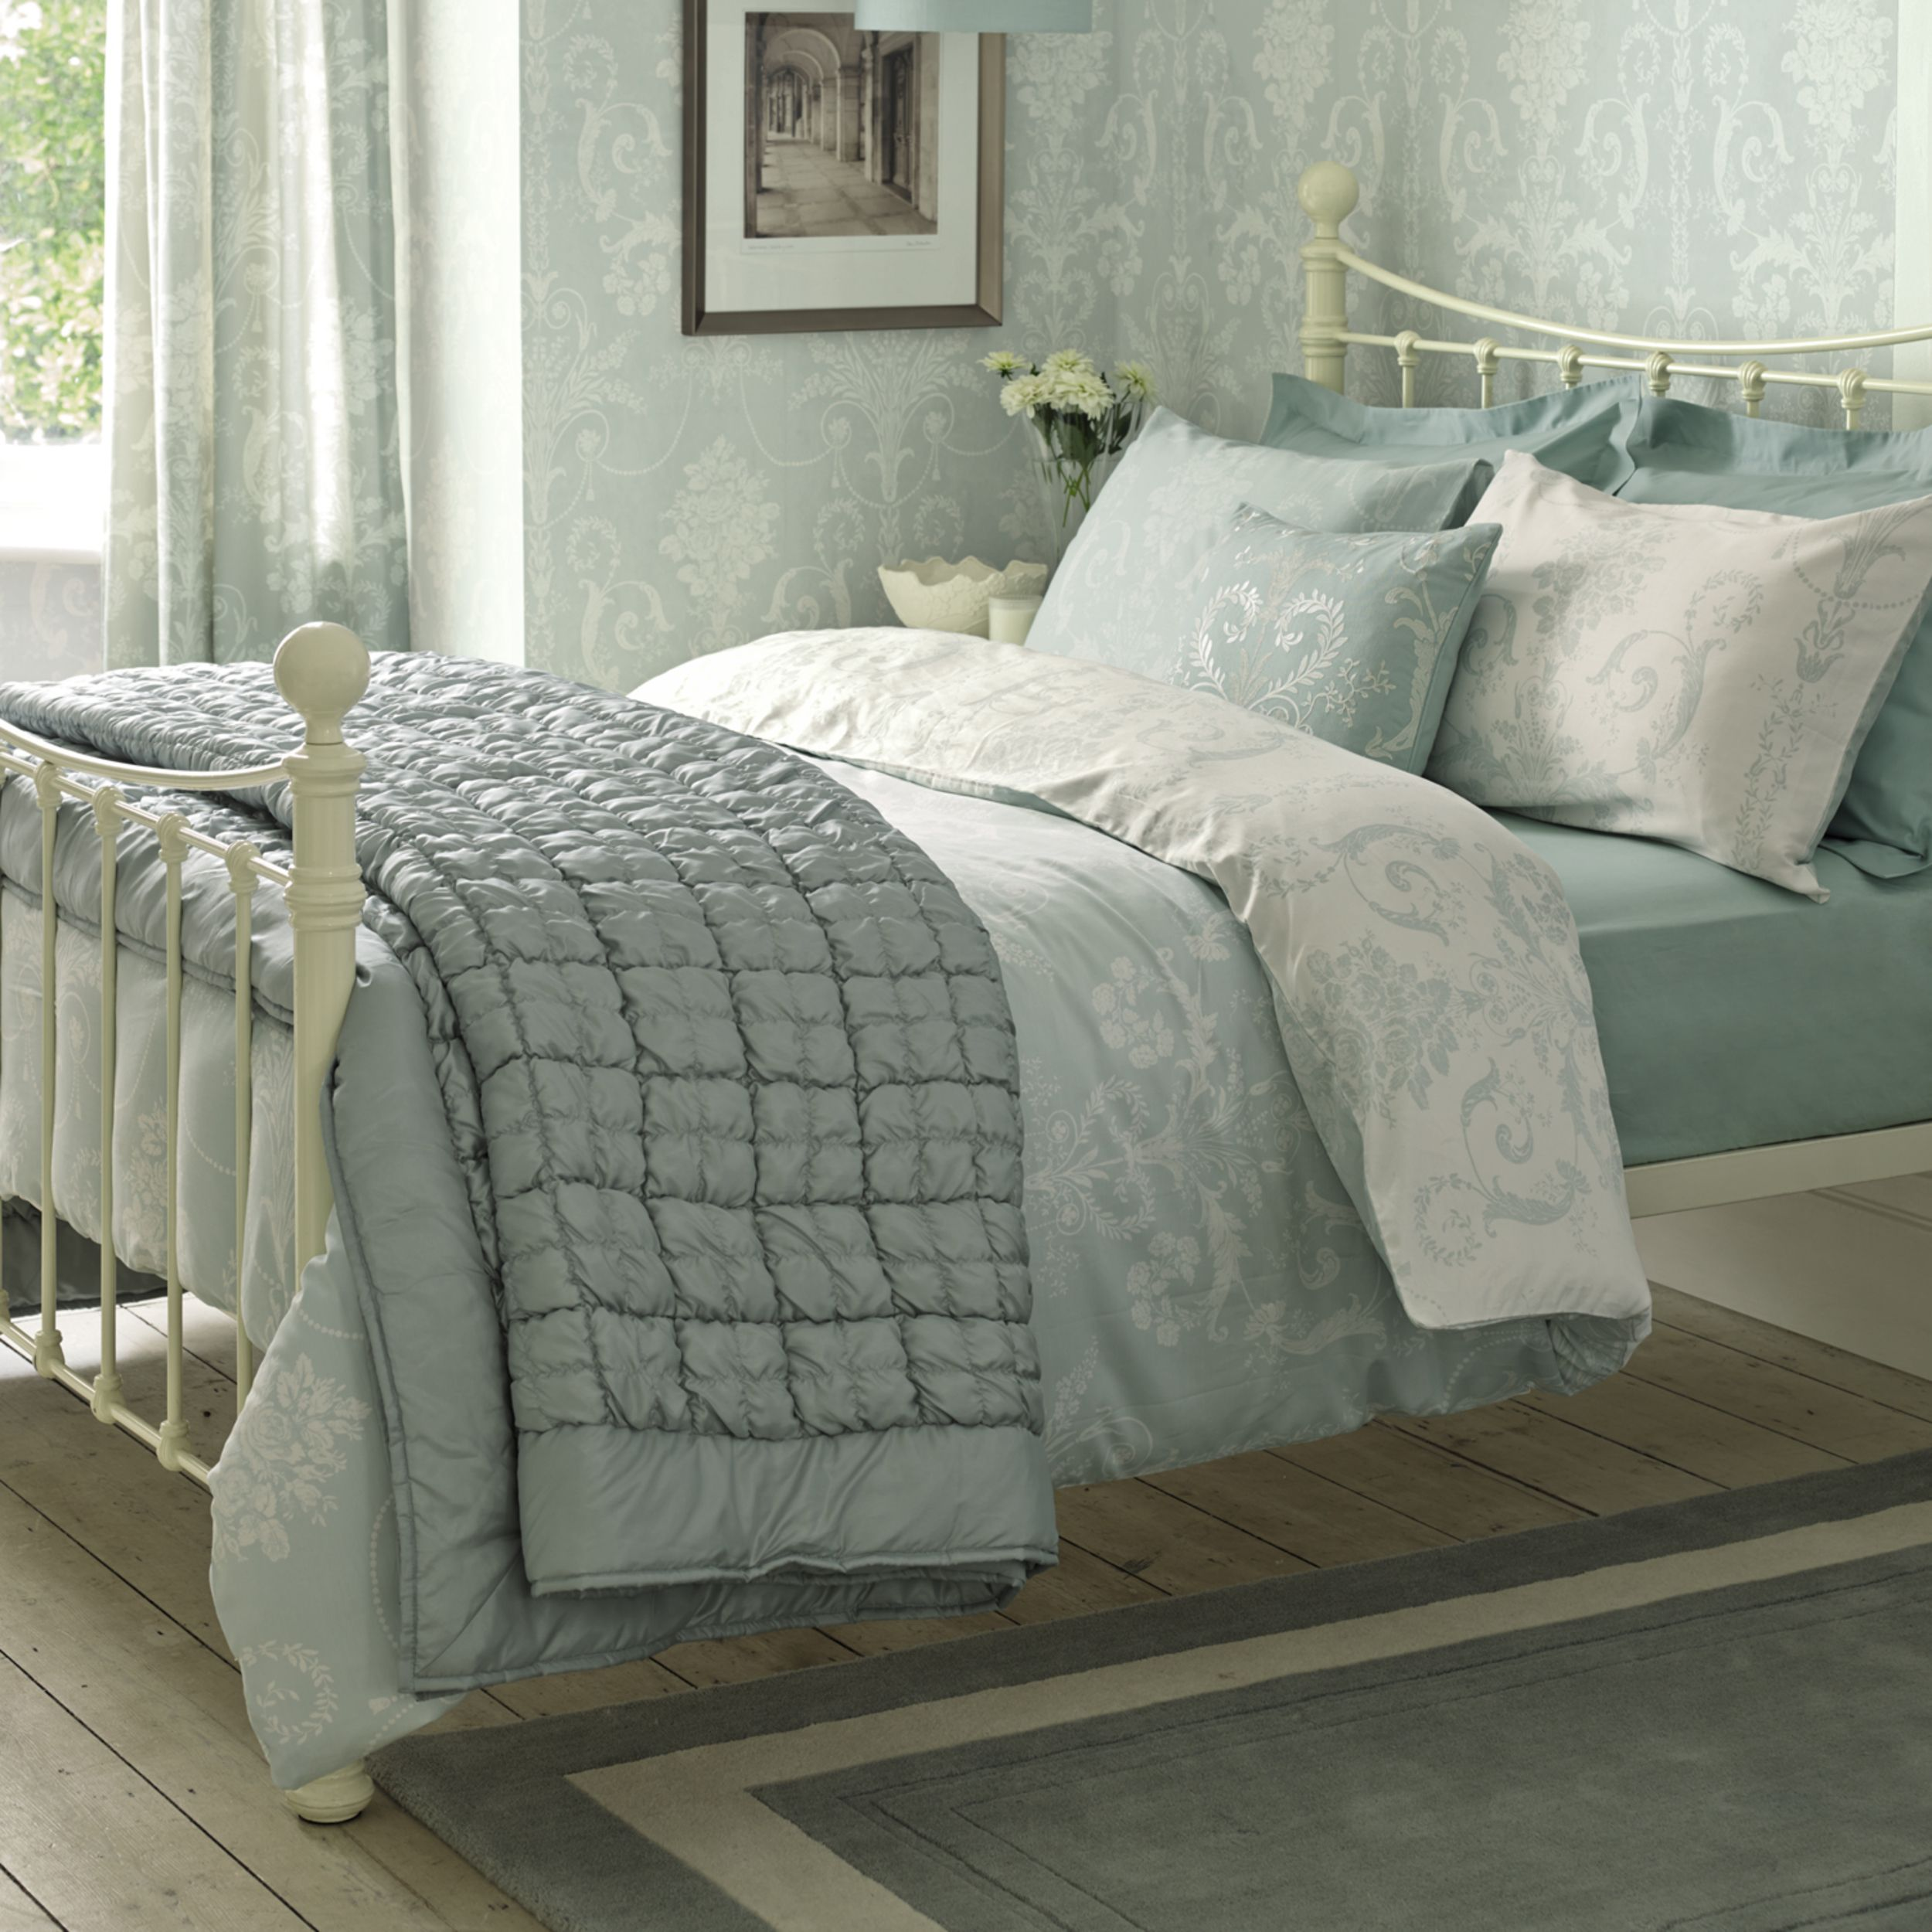 Josette Bedlinen Laura Ashley Bedroom Home Duck Egg